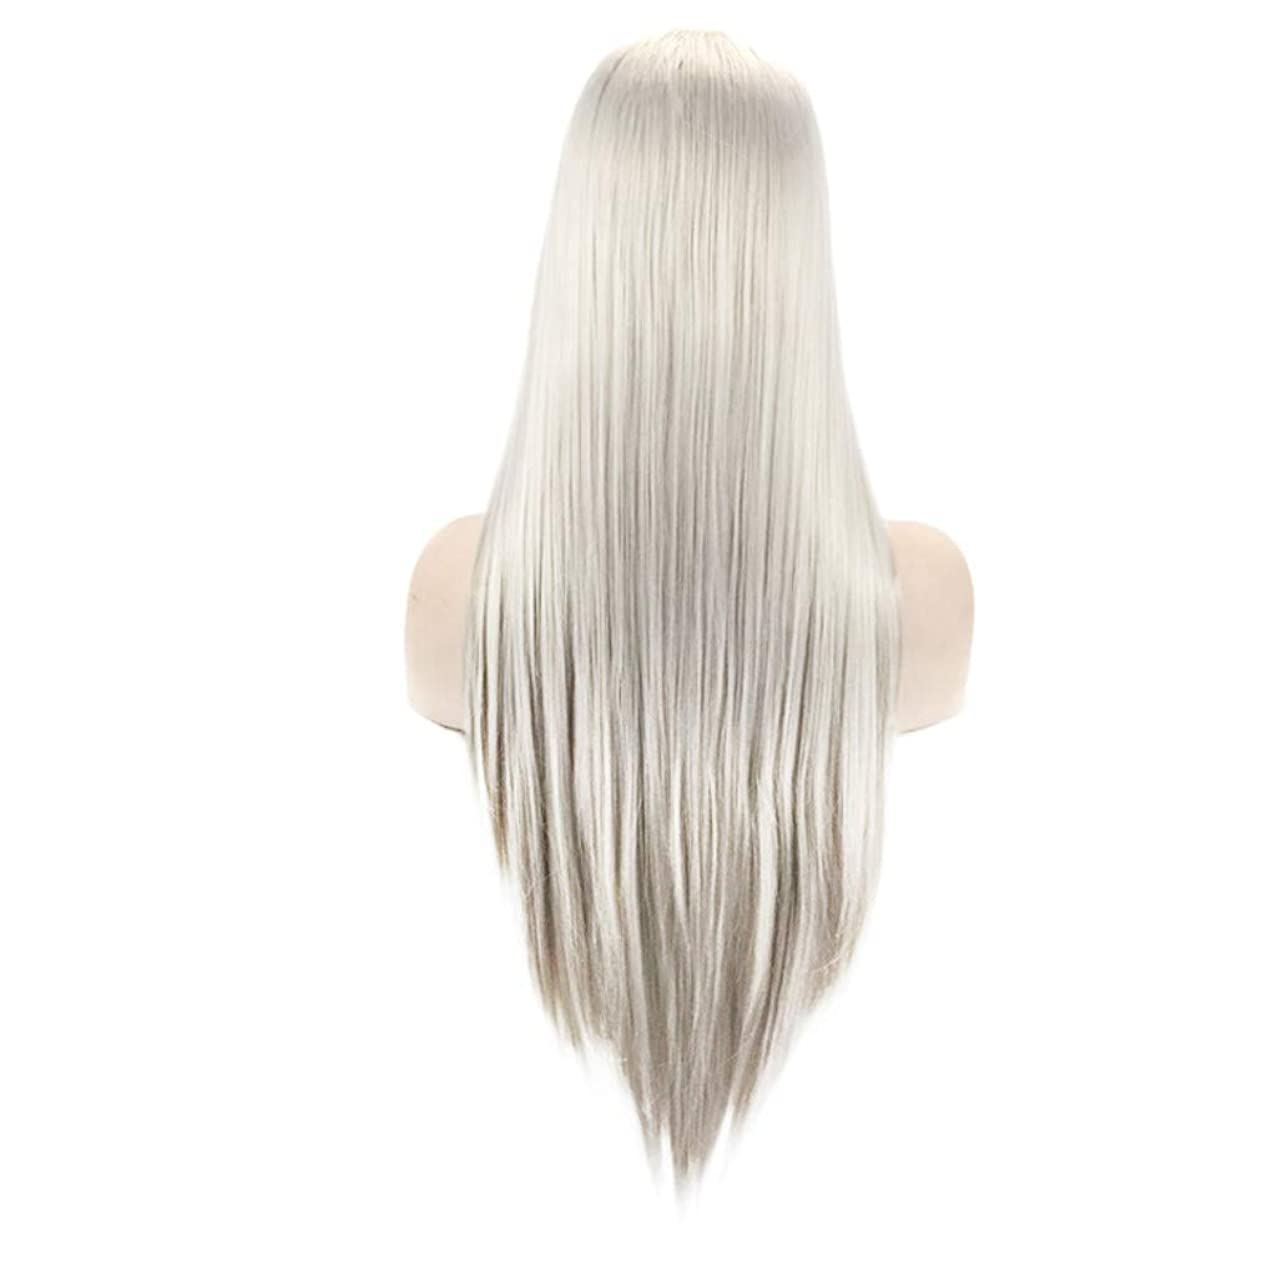 ASTV Fashion 24Inches Synthetic Wig Silver Straight Wigs Hair for Women Natural Lace Front Wig For Girls Fashion Soft Satin Hair Bun for Theme Parties, Concerts, Weddings, Dating